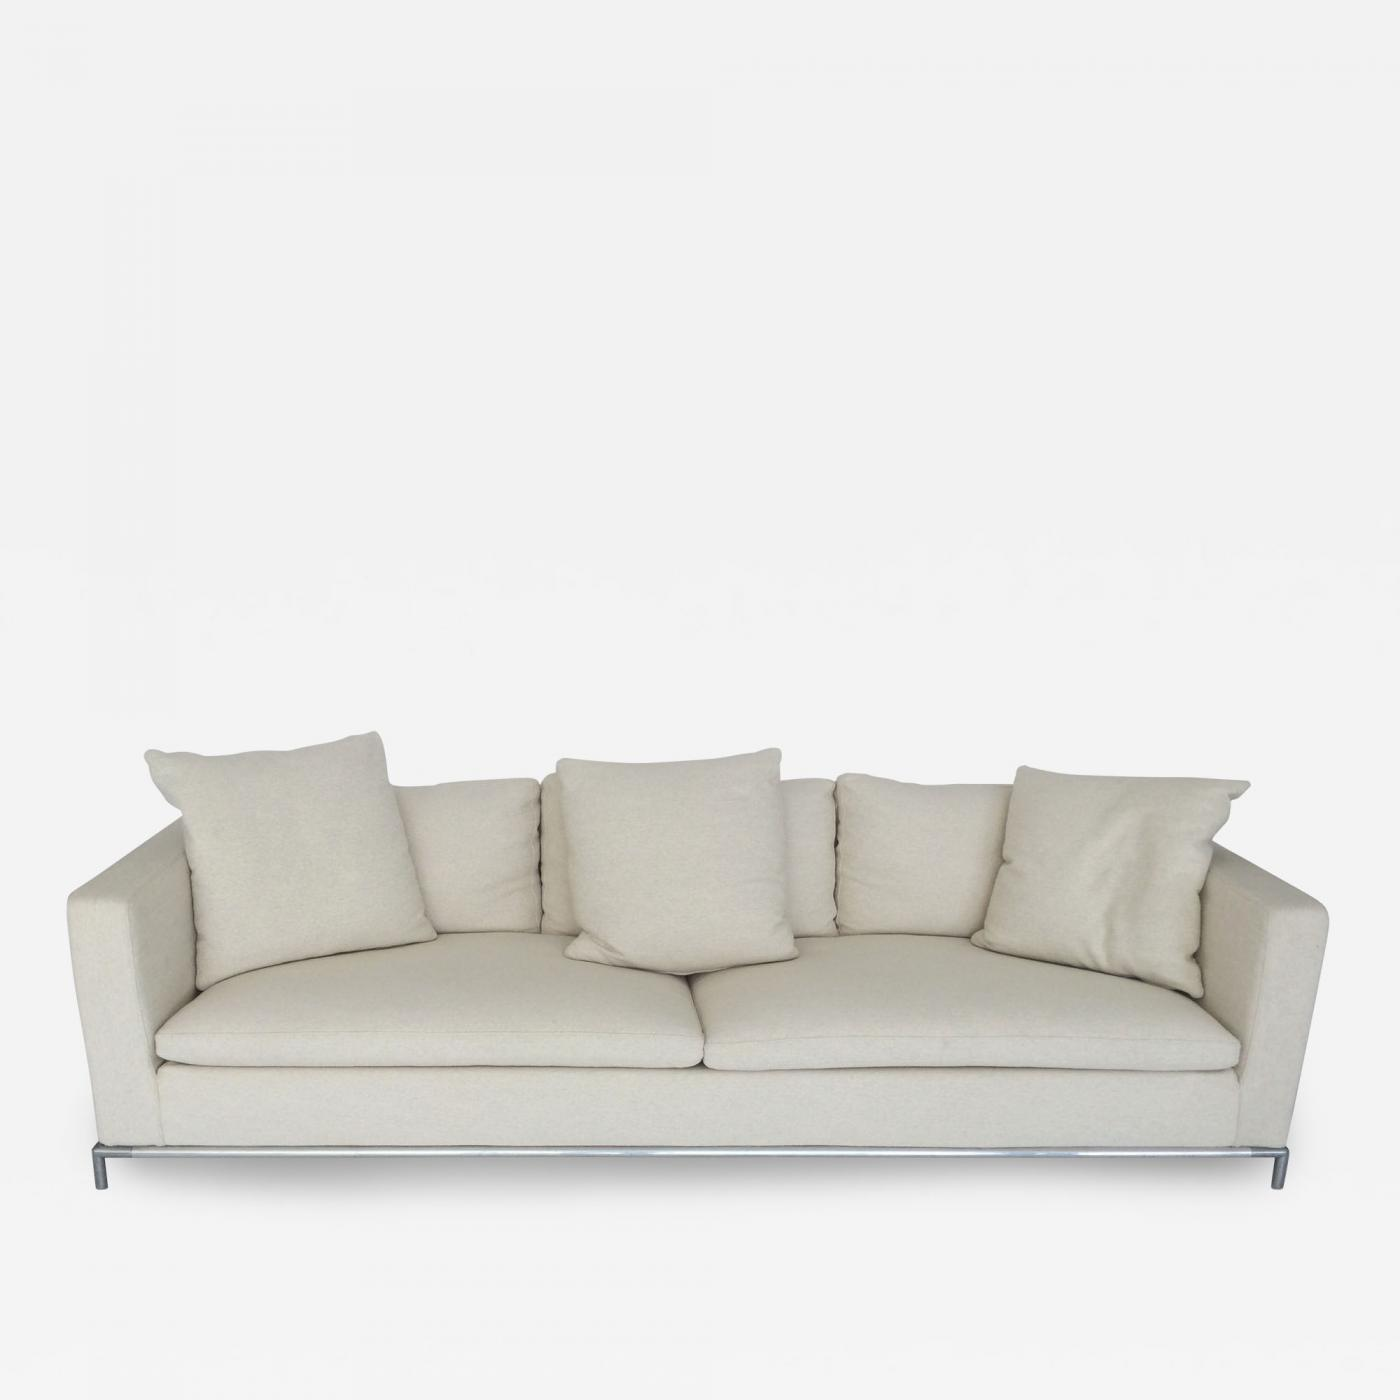 antonio citterio george sofa by antonio citterio for b b. Black Bedroom Furniture Sets. Home Design Ideas